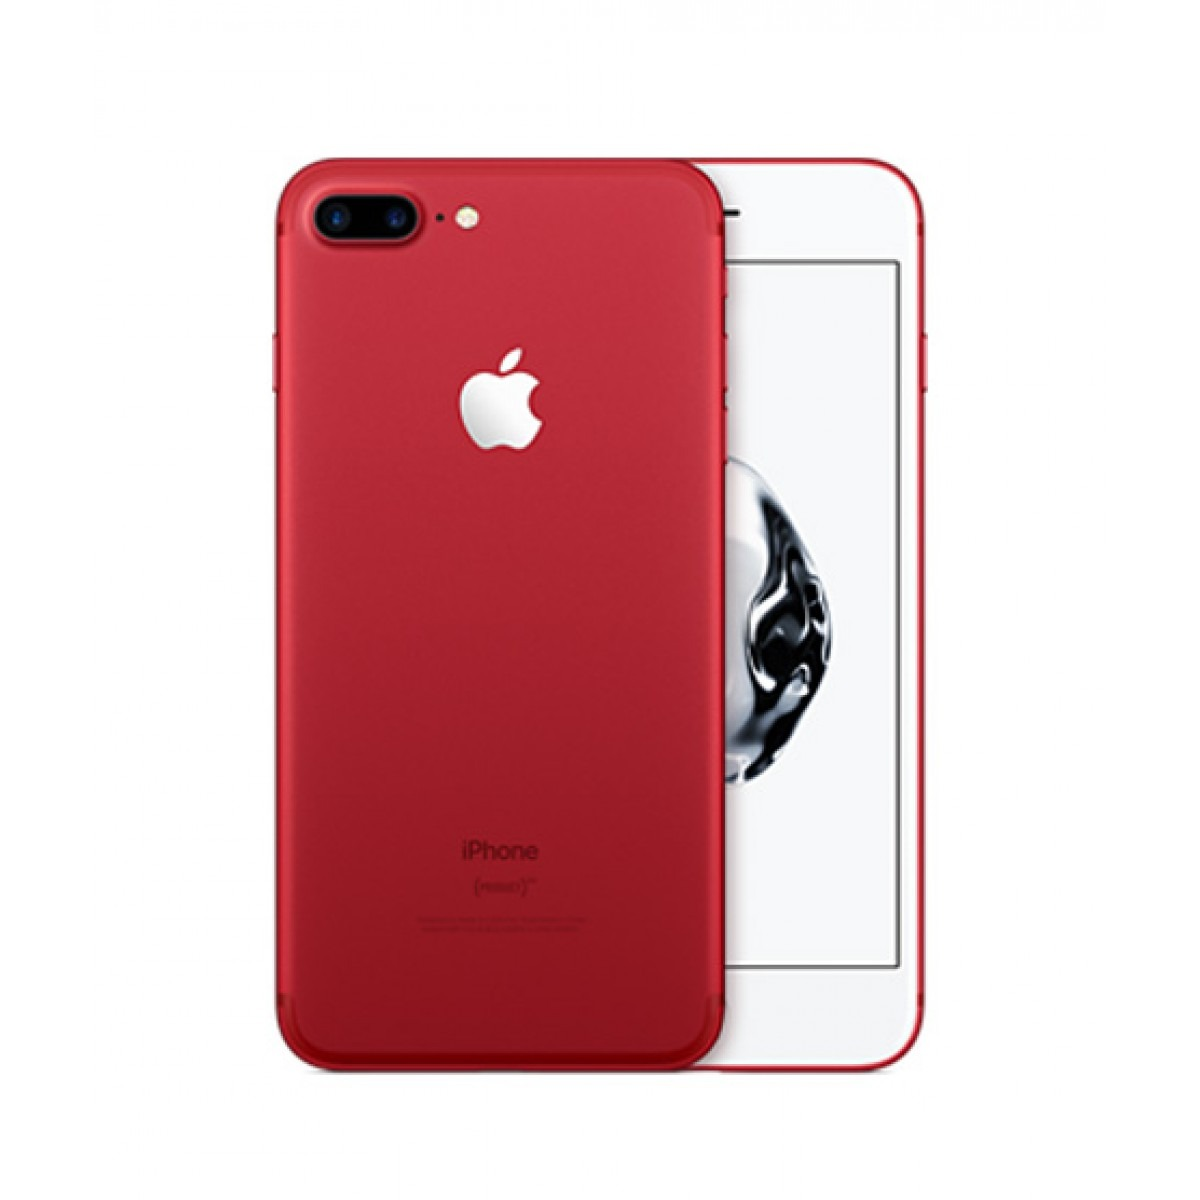 Apple iPhone 7 Plus (128GB RED)